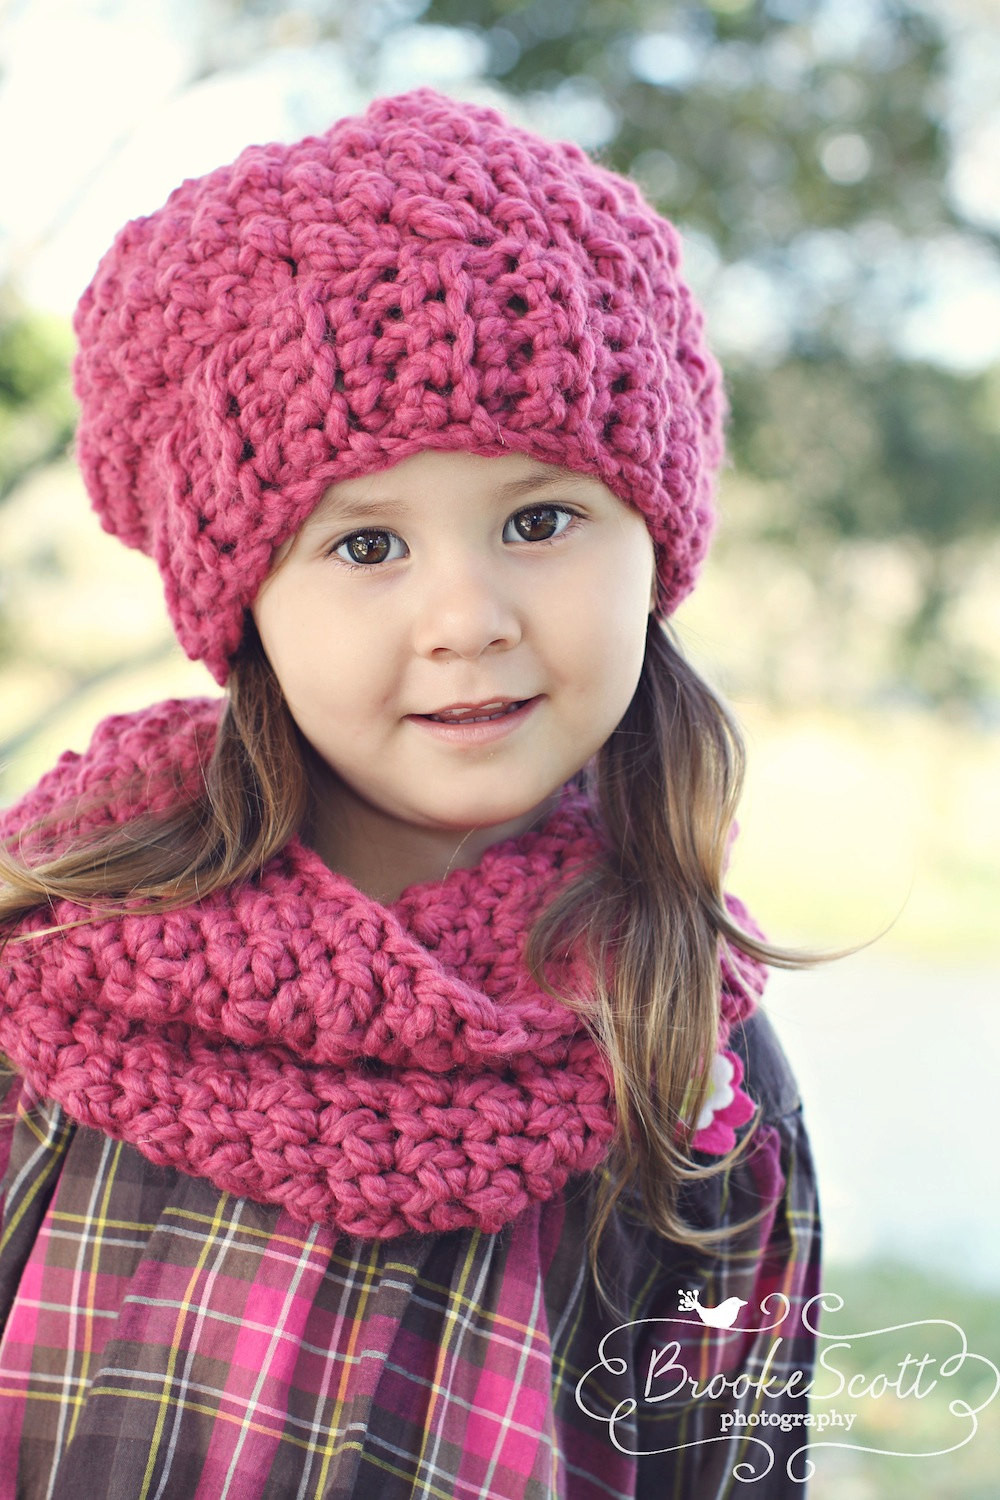 Crochet Kids Beanie Inspirational Crochet Patterns Childrens Hats Crochet and Knit Of Marvelous 41 Ideas Crochet Kids Beanie